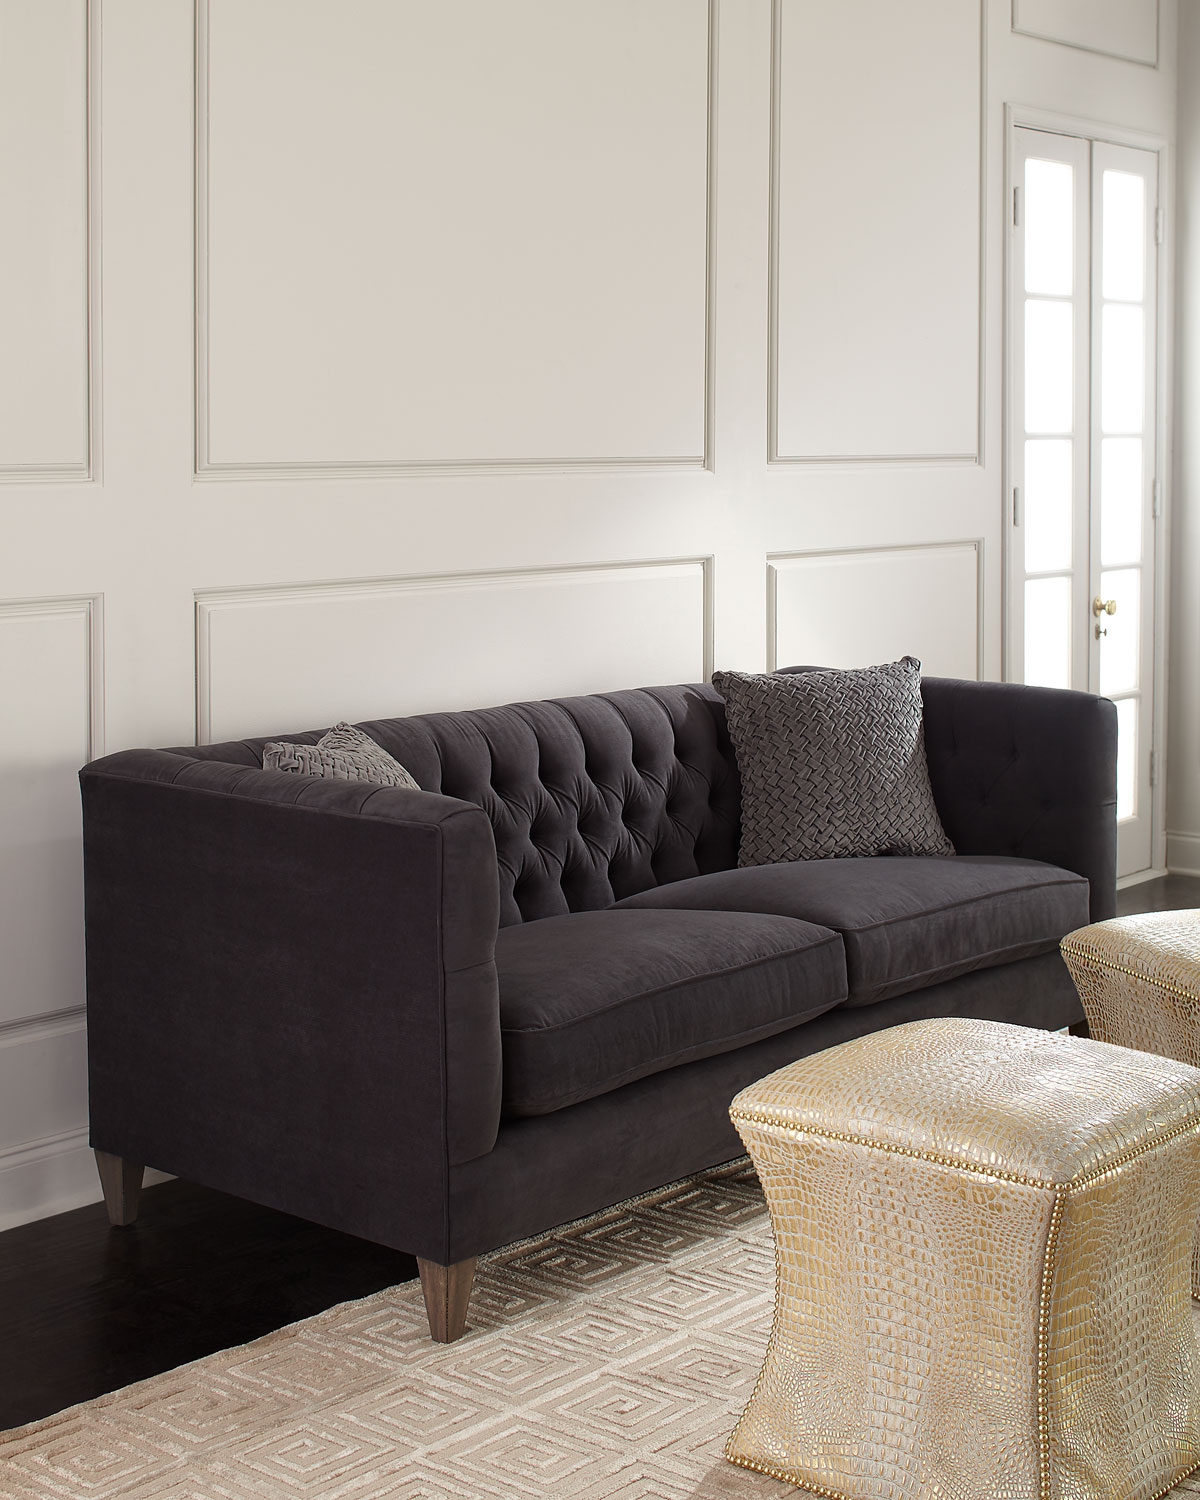 Beckett tufted back sofa 83